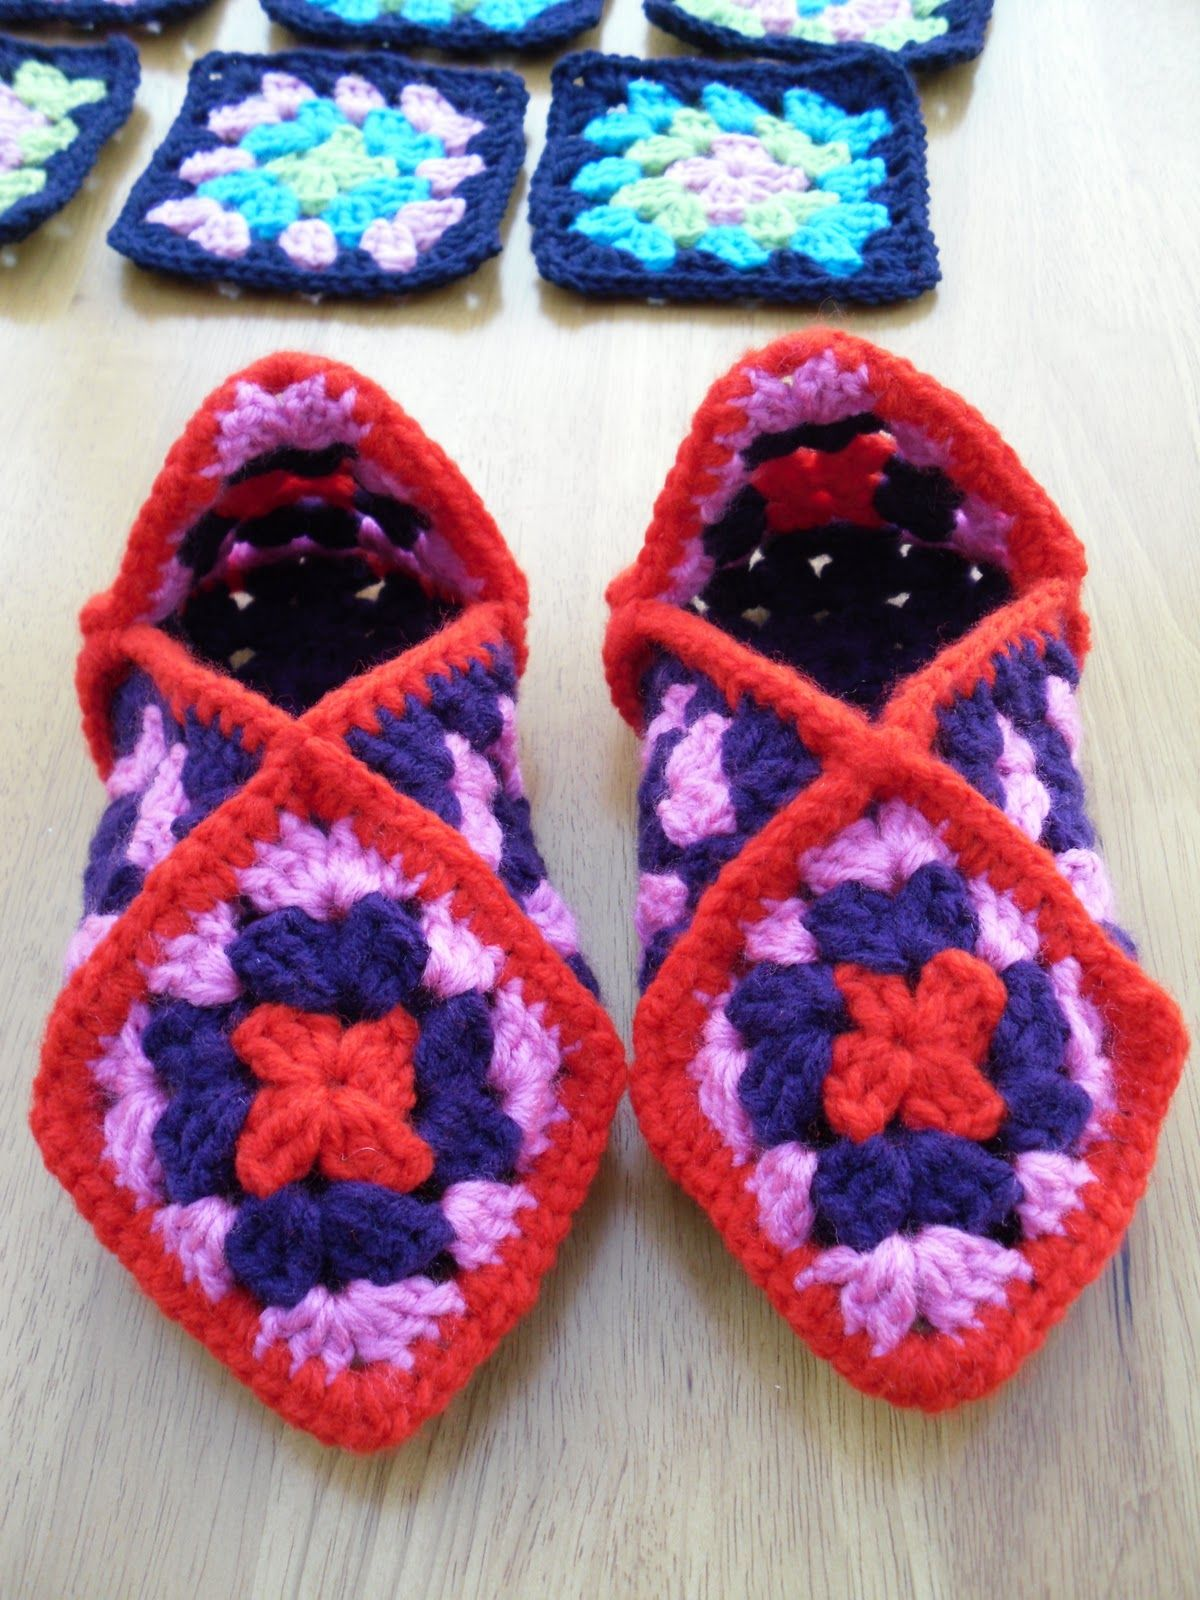 How to crochet granny squares granny squares square patterns basic granny square pattern with step by step instructions jeffs nanna used to make these for bankloansurffo Image collections